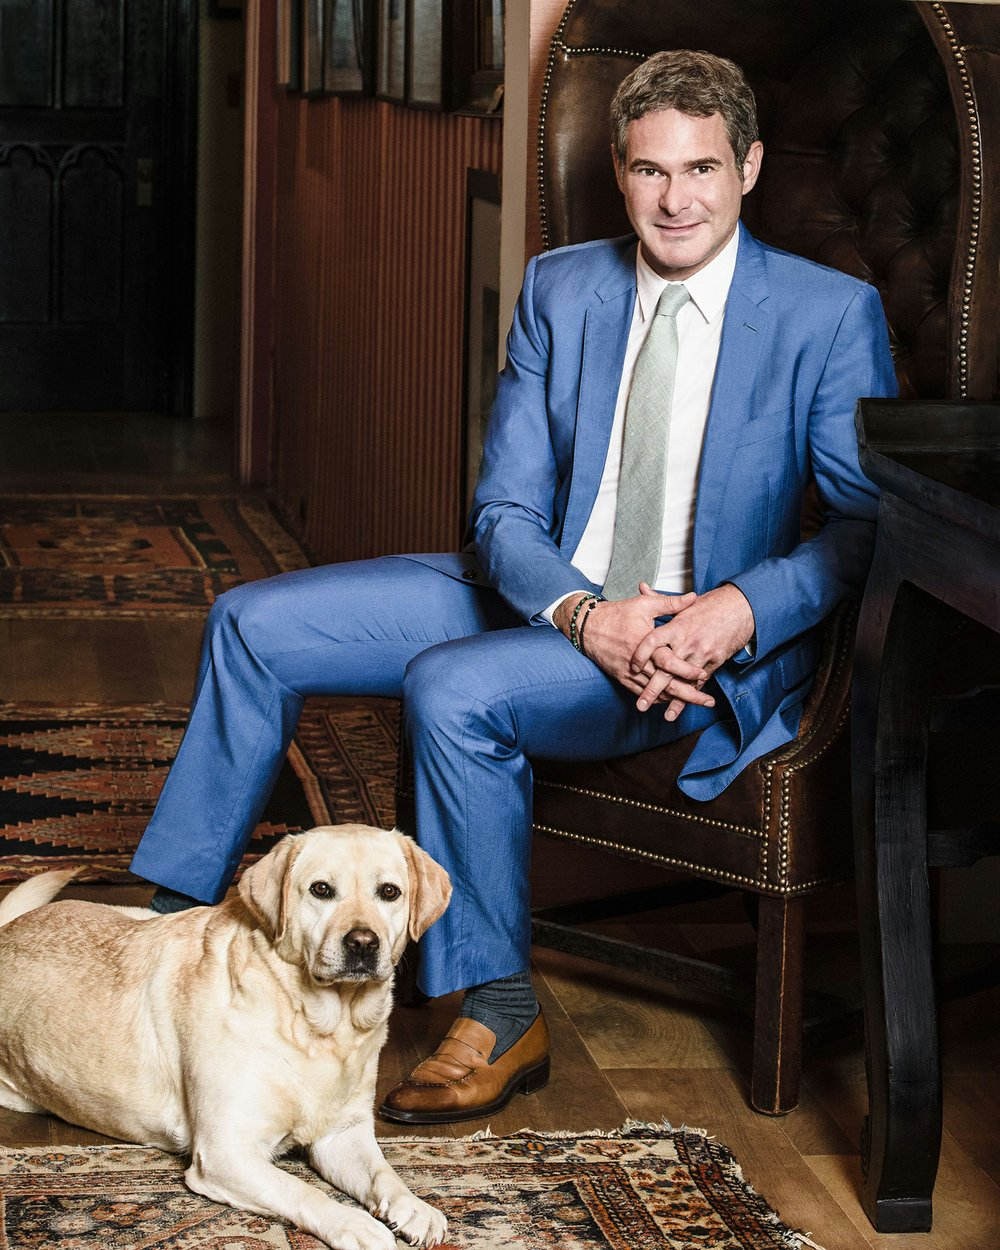 Arkansan/New Yorker Bronson van Wyck travels the world to throw fabulous parties as one of the country's top event planners. He and his dog, Cat, get back home to Tuckerman every chance they get. (Photo by Hannah Thomson, special to the Democrat-Gazette)